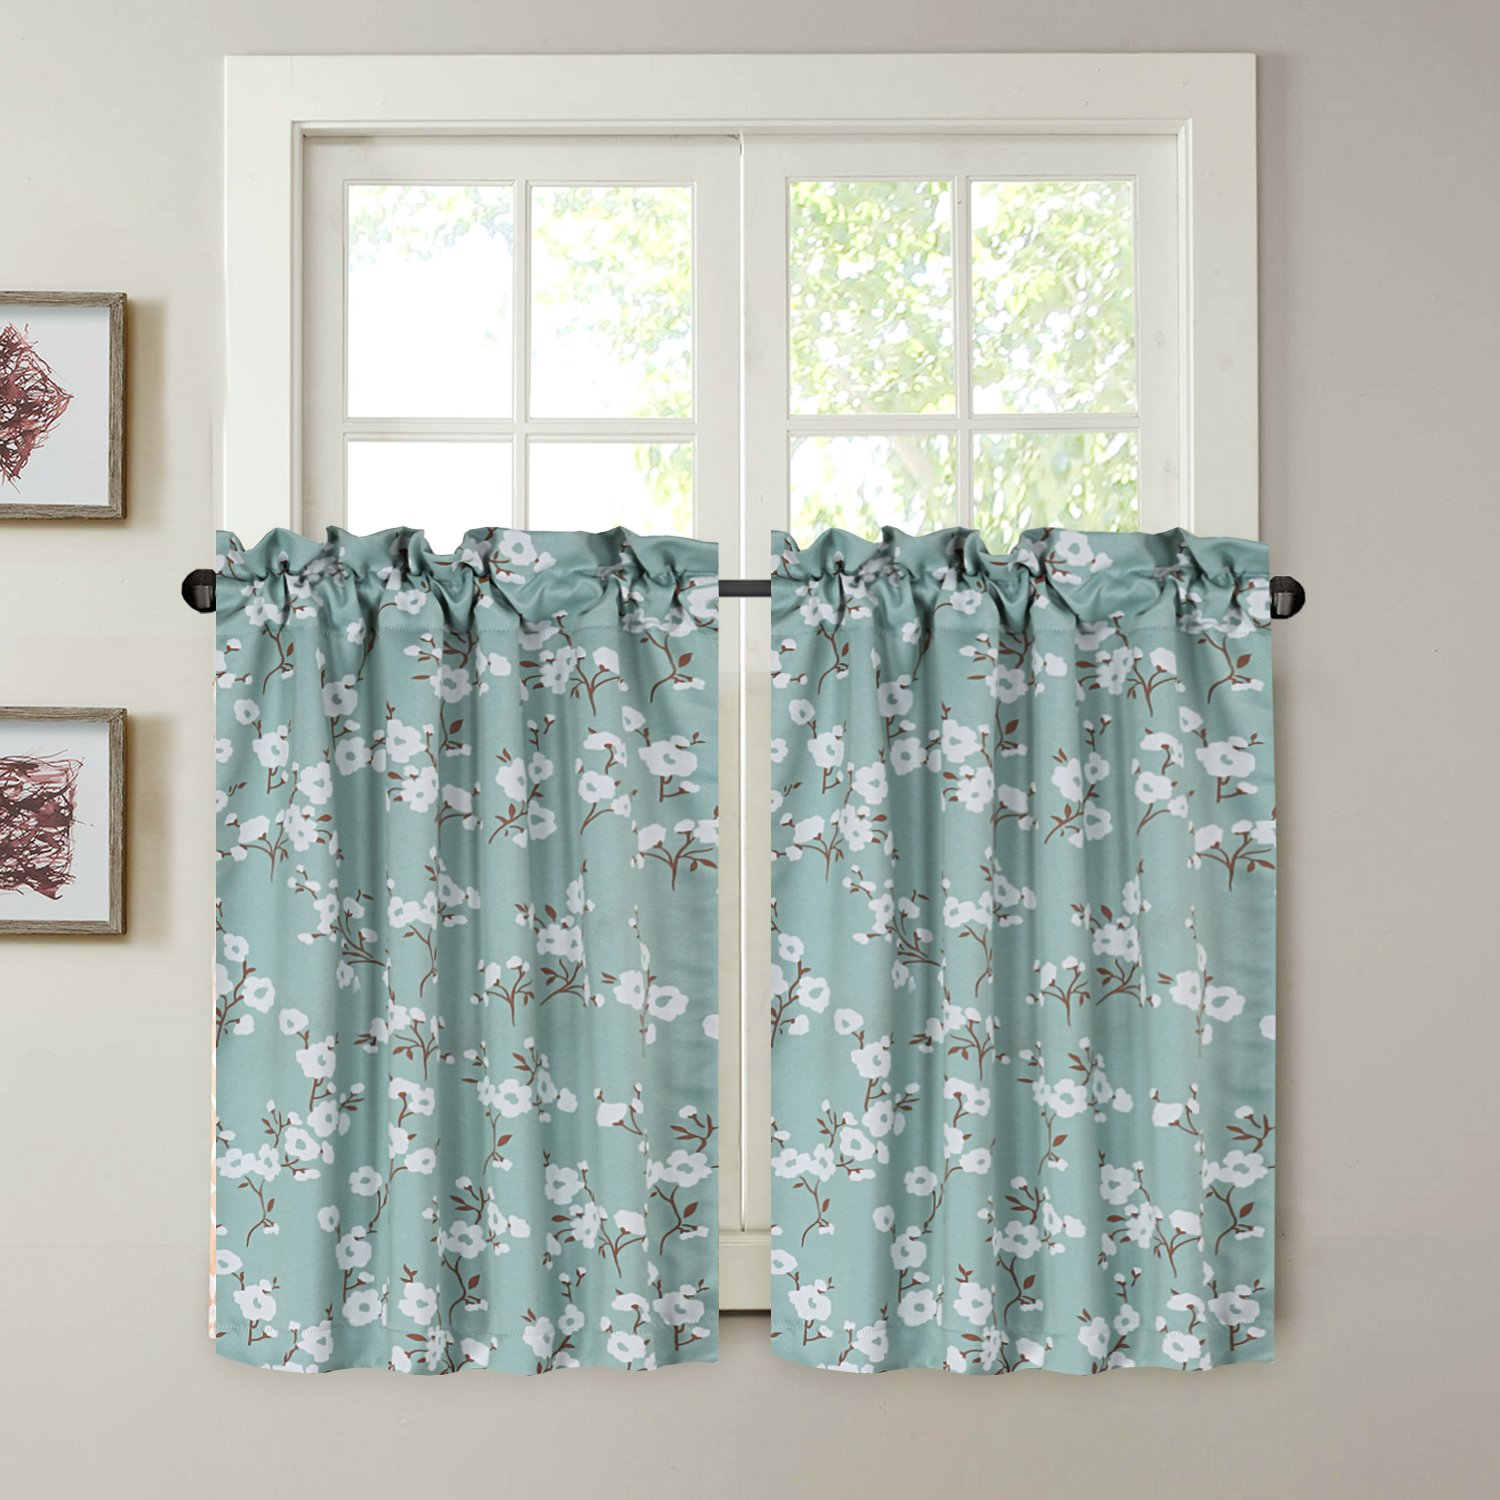 H.VERSAILTEX Kitchen Half Window Decorative Thermal Insulated Blackout  Curtain Rod Pocket Tier Curtains - Aqua Floral Pattern - (58\